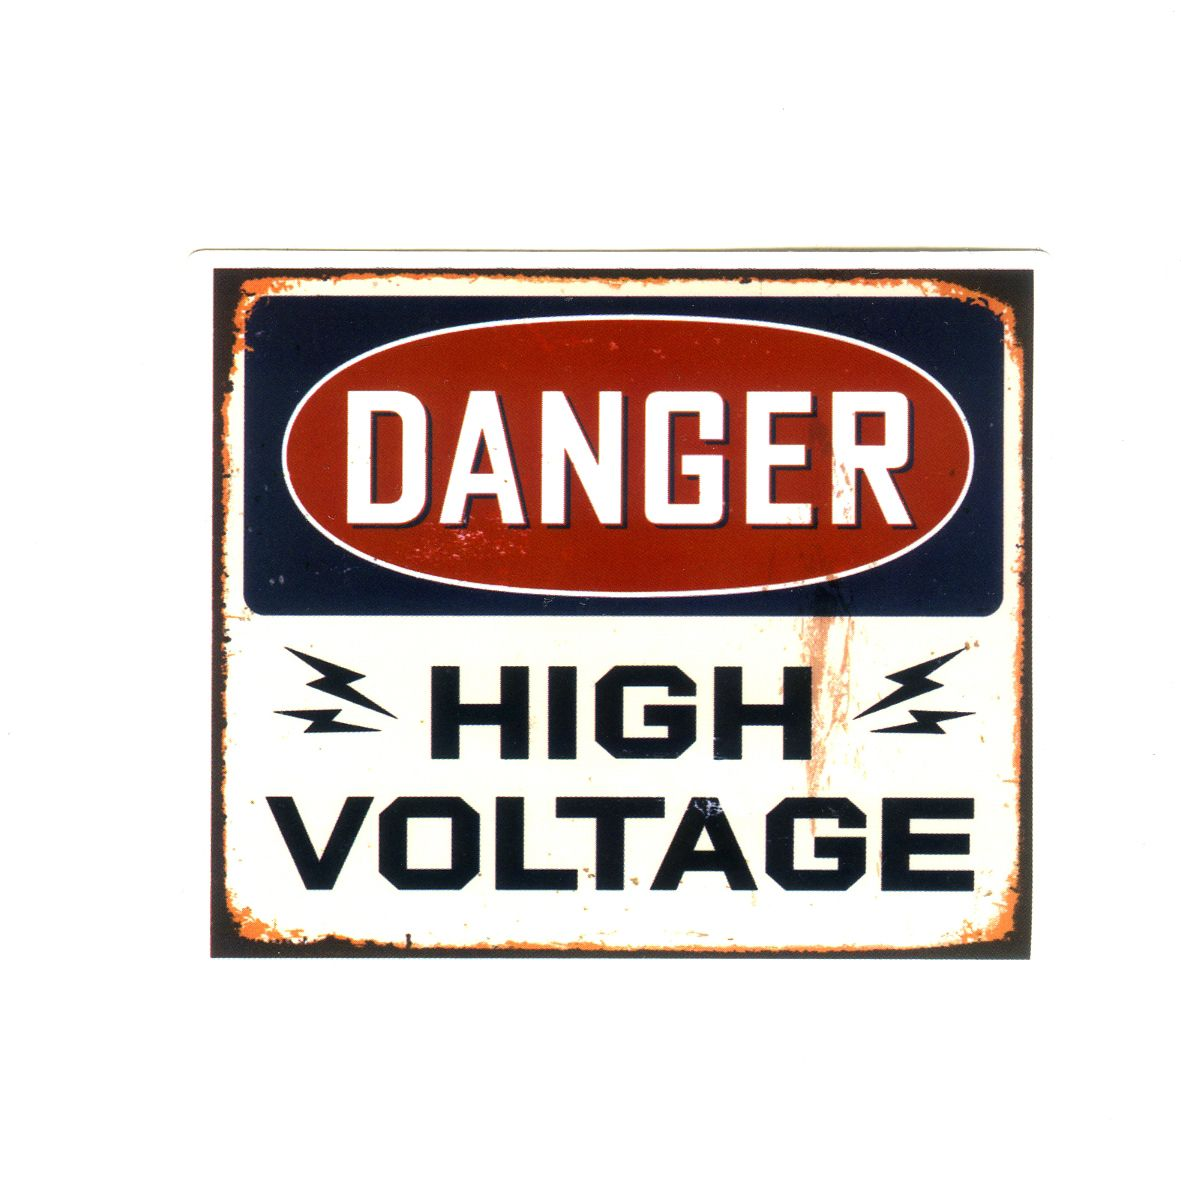 1277 Danger High Voltage Sign Width 8 Cm Decal Sticker Decalstar Com Vintage Metal Signs Metal Signs Metal Posters Retro